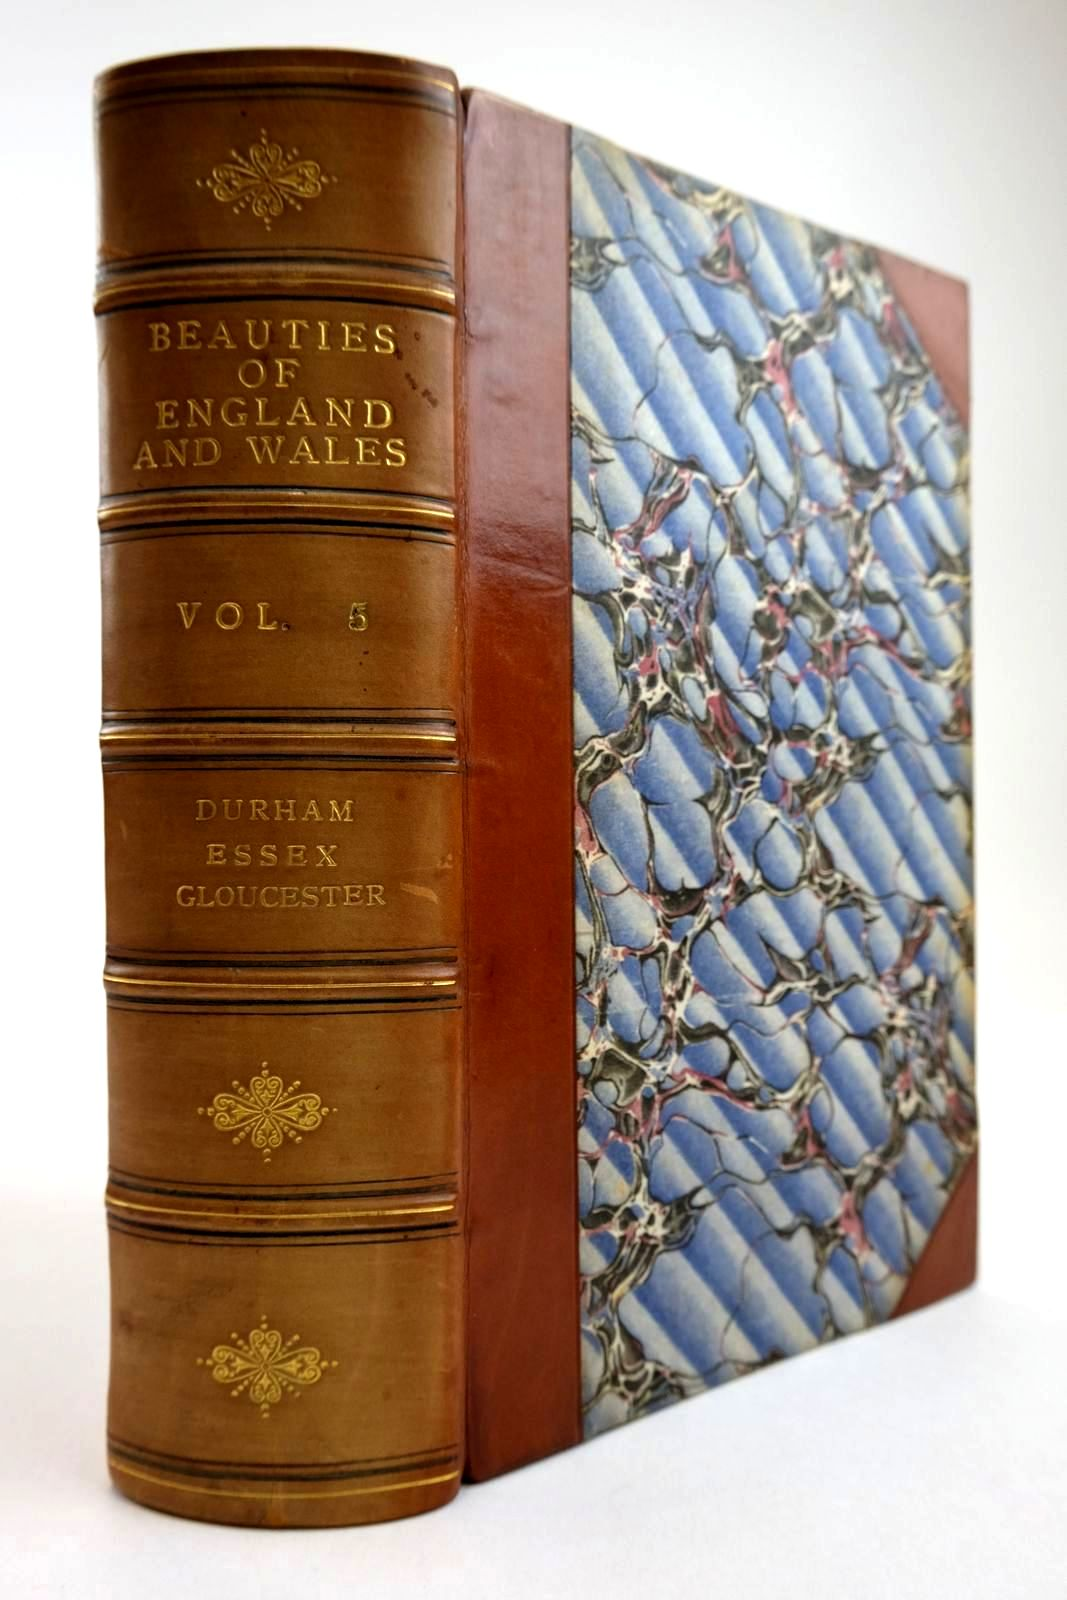 Photo of THE BEAUTIES OF ENGLAND AND WALES VOL V written by Britton, John Brayley, Edward Wedlake published by Vernor & Hood (STOCK CODE: 2134255)  for sale by Stella & Rose's Books